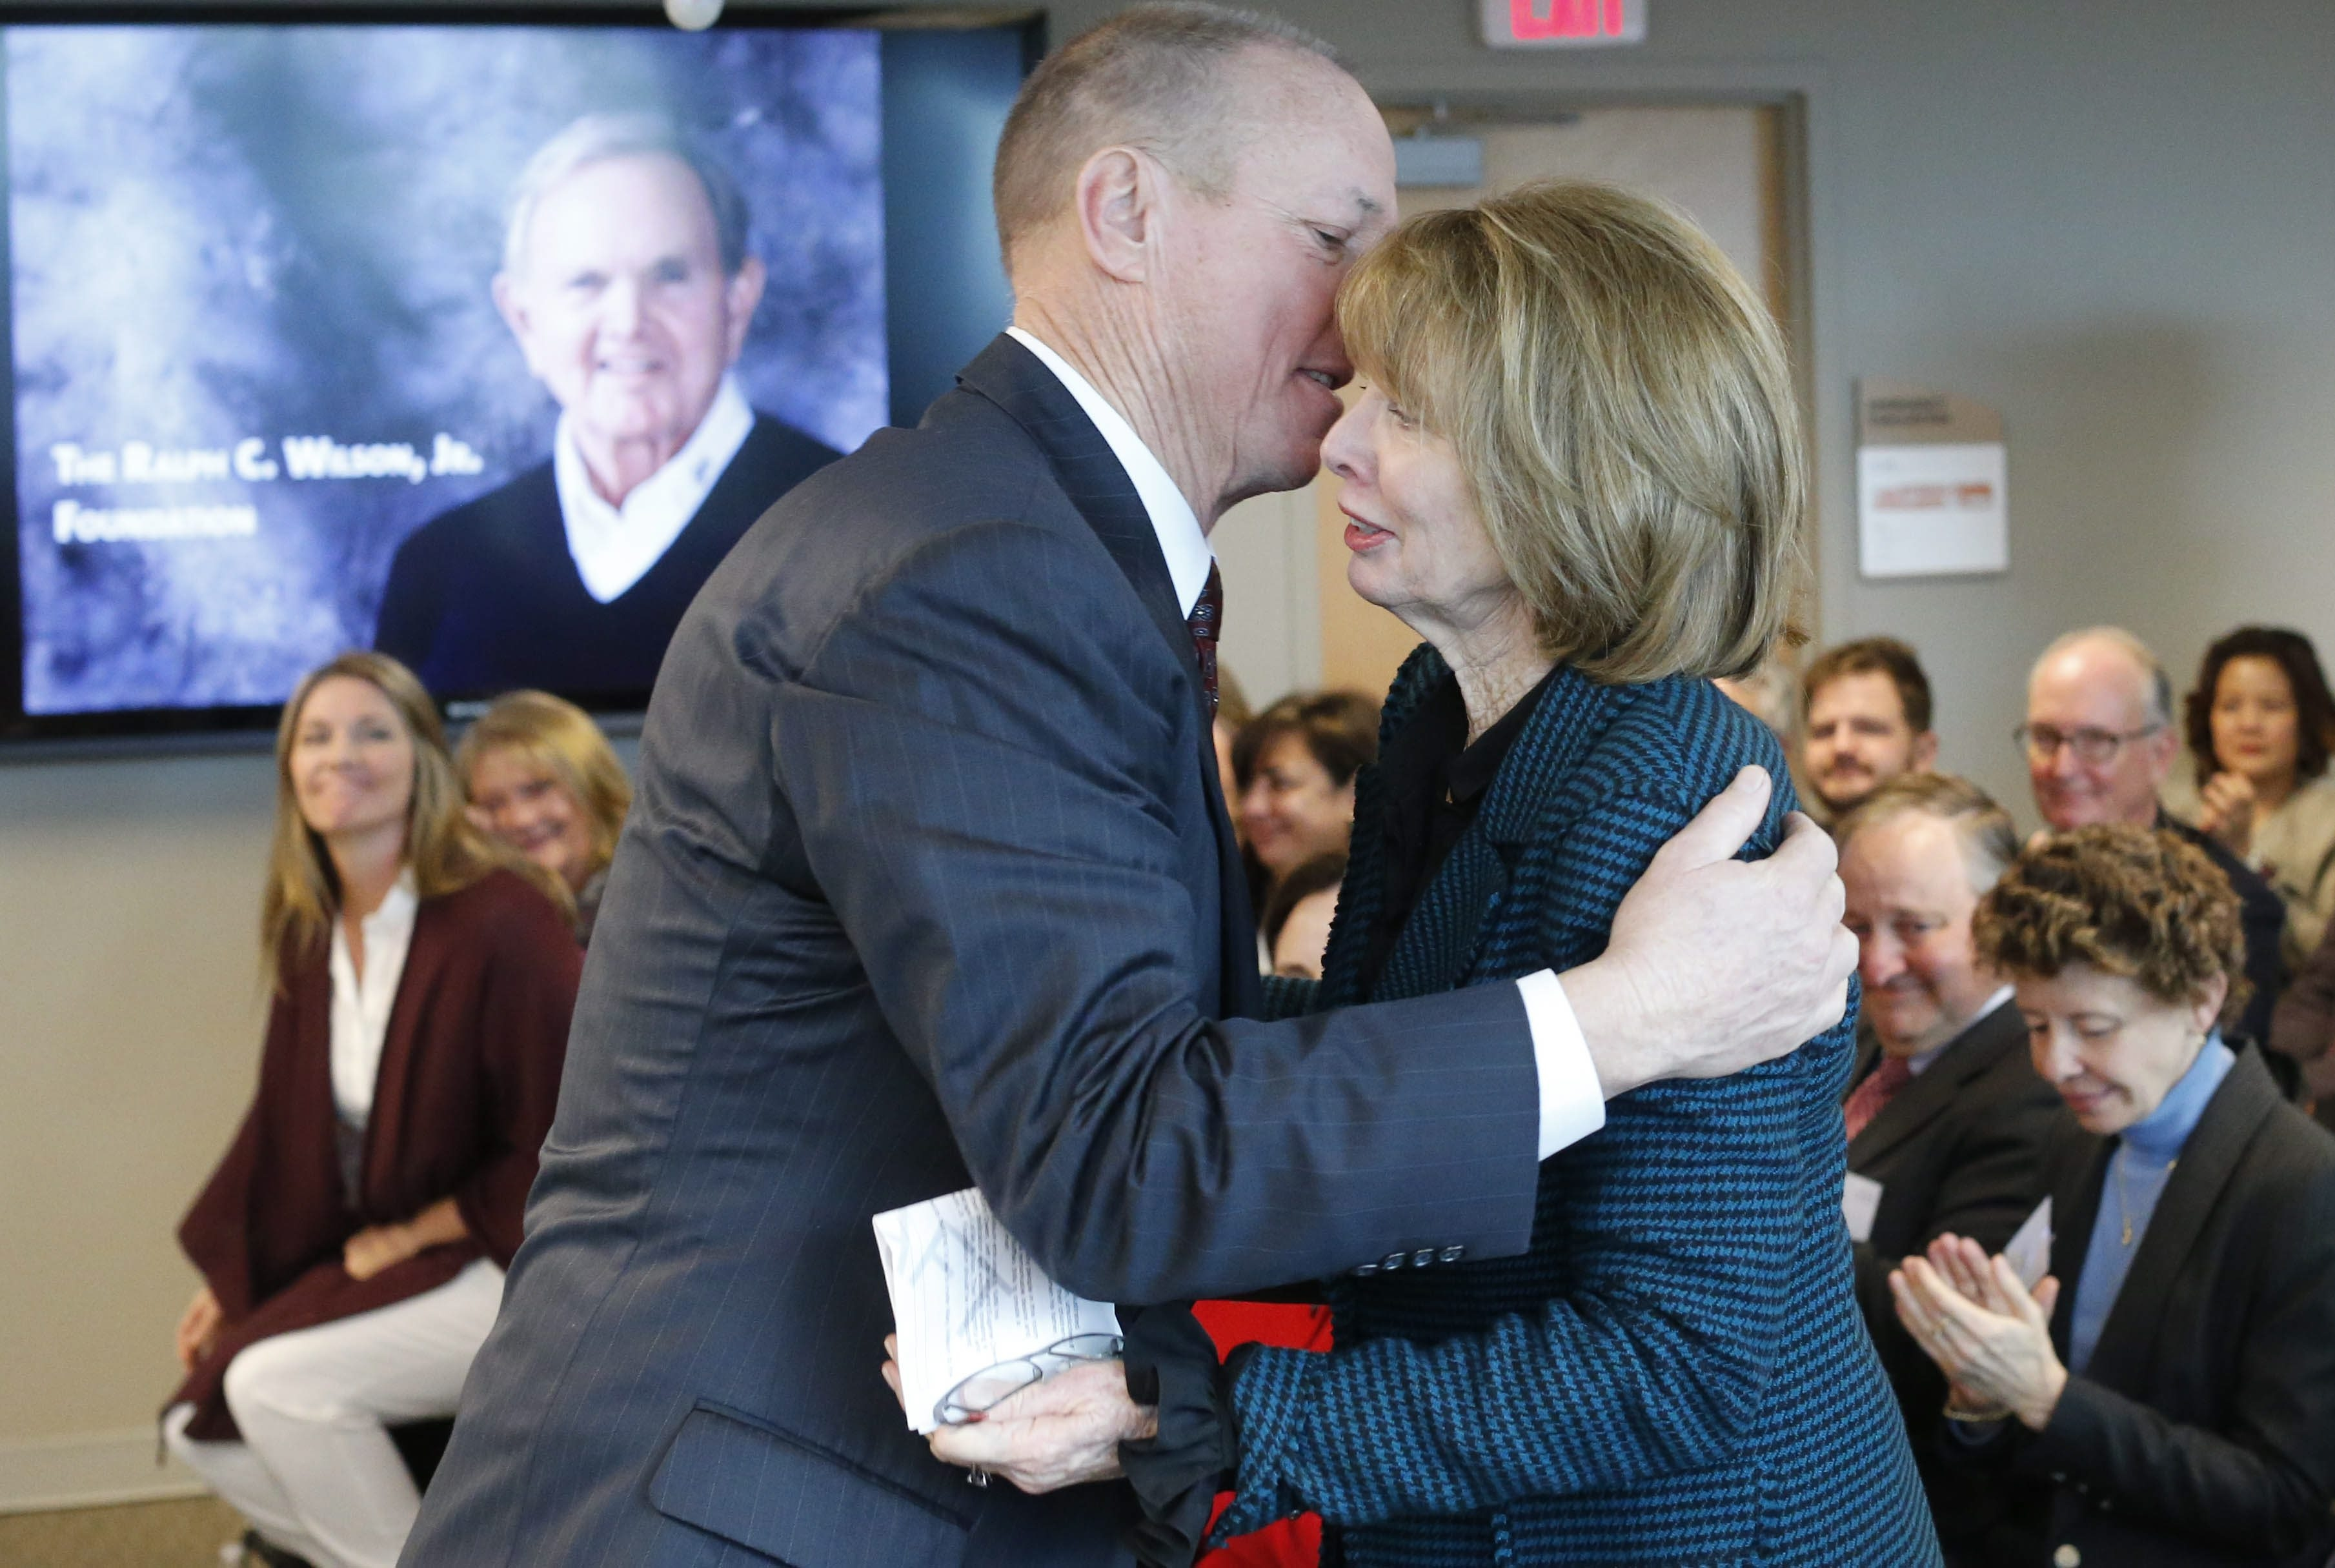 Jim Kelly hugs Mary Wilson during the announcement of the Ralph C. Wilson Jr. Foundation's new awards and a new philanthropic partnership with the Community Foundation for Greater Buffalo on Tuesday, Nov. 24, 2015.  (Derek Gee/Buffalo News)